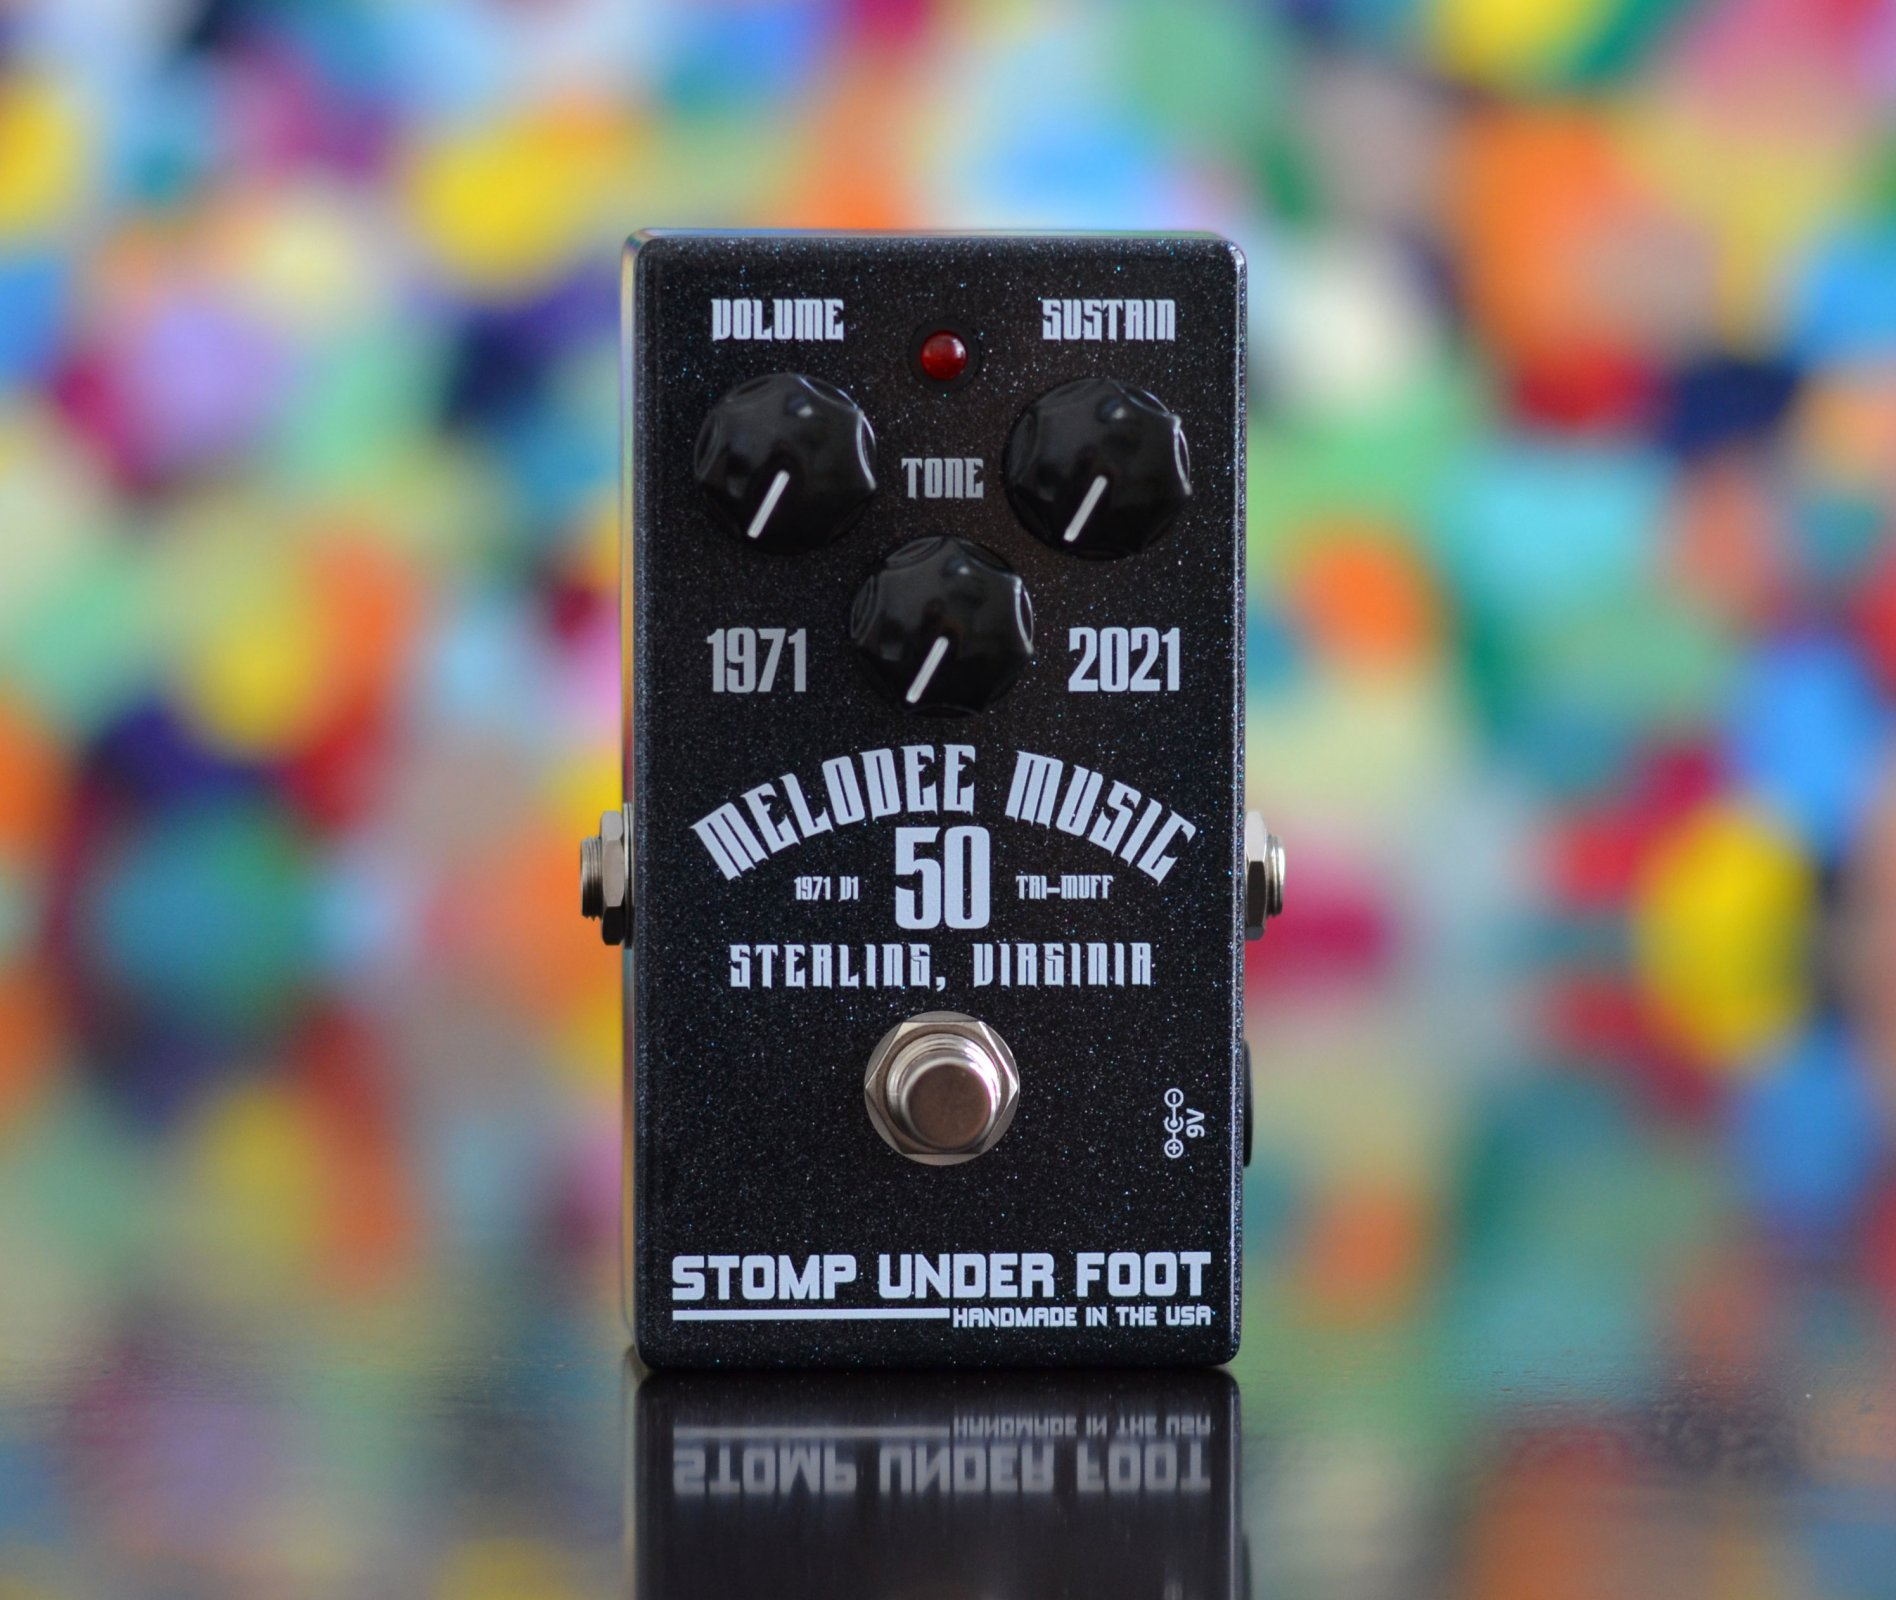 Pre-Order Melodee Music 50th Anniversary 1971 Fuzz from Stomp Under Foot